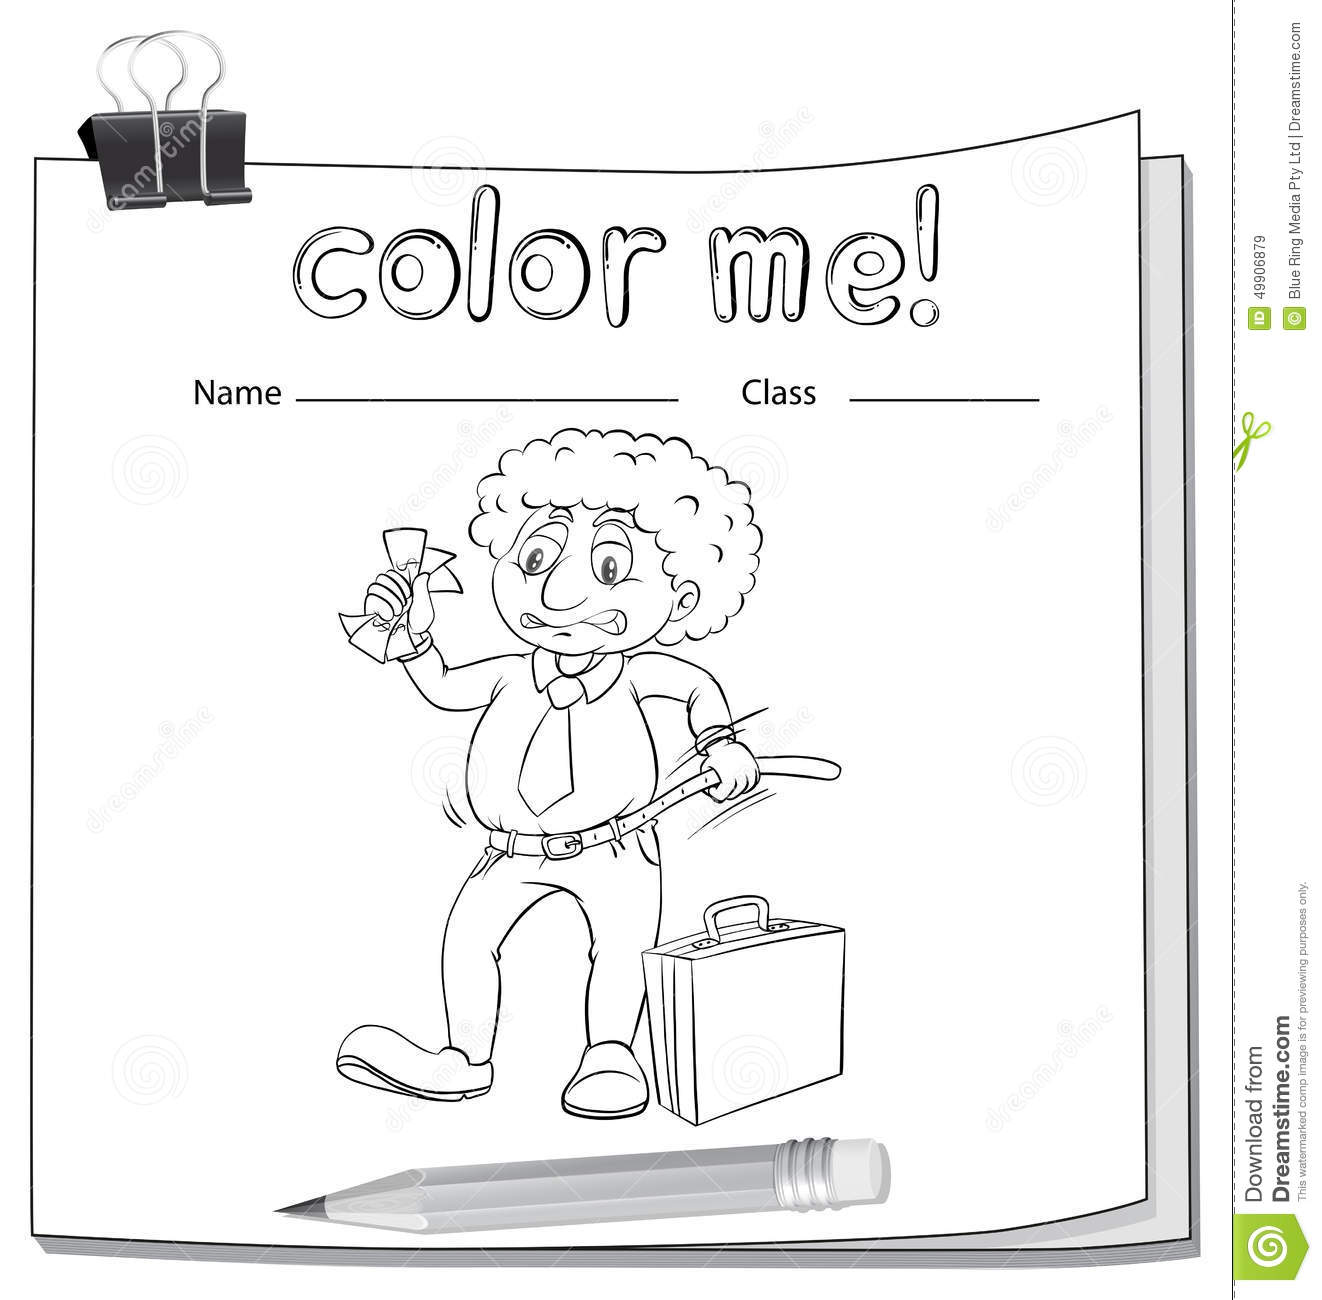 A Color Me Worksheet With A Man Stock Vector